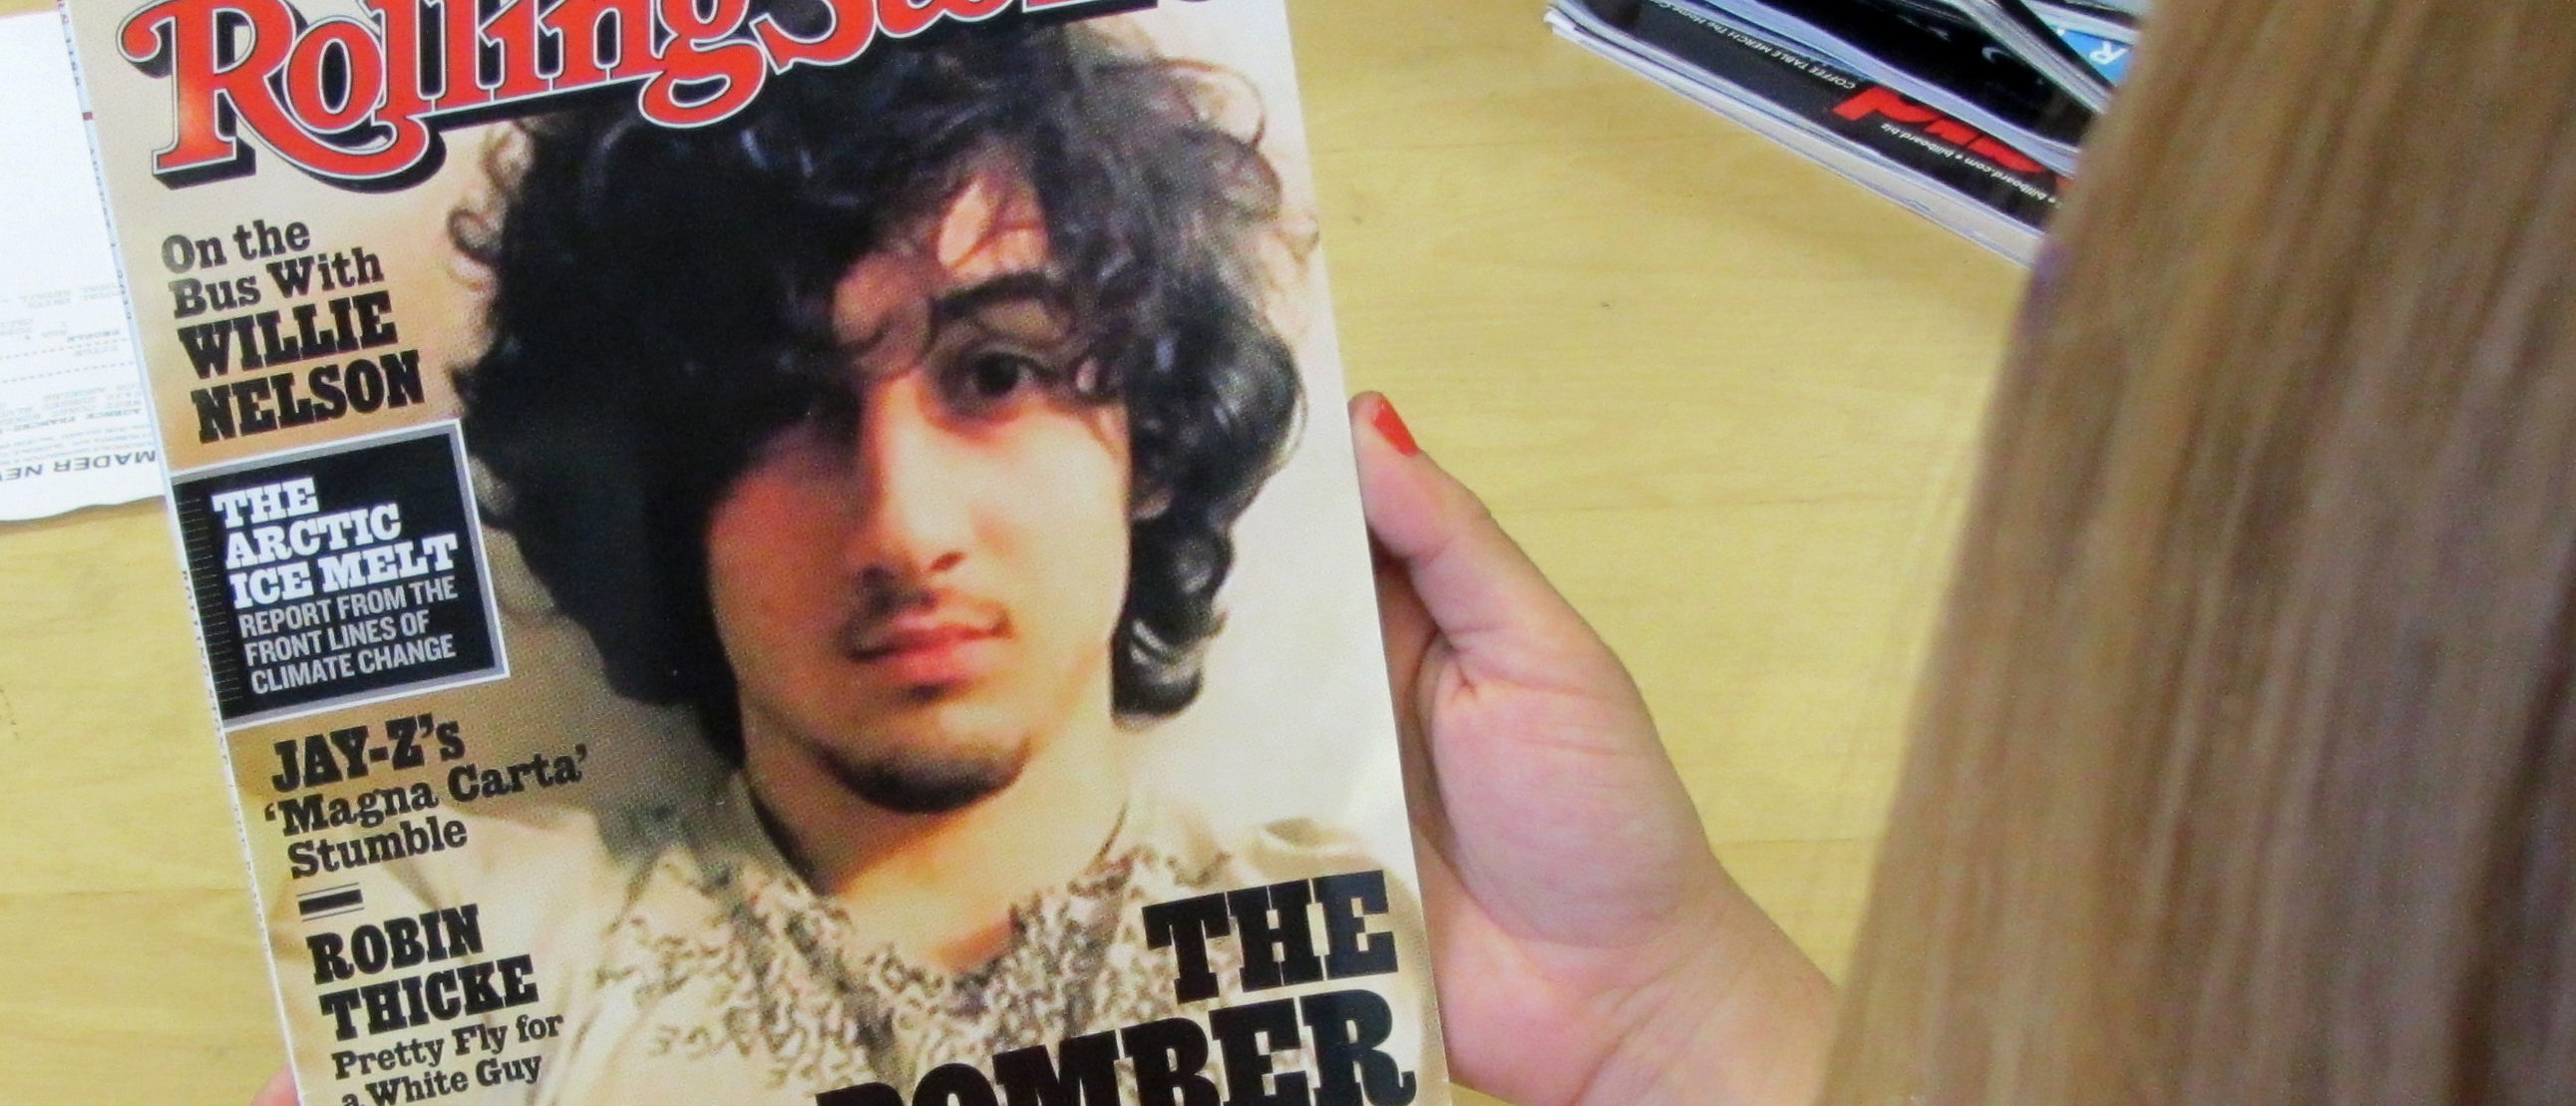 "An early copy of Rolling Stone magazine's August 2013 issue is read at an office in Los Angeles on July 17, 2013. Rolling Stone defended the cover story on Boston bombing suspect Dzhokhar Tsarnaev, which triggered criticism that the magazine was ""glamorizing terrorism"" and calls to boycott the publication. At least two national chain stores announced they would not be selling the latest issue of the magazine, known for interviews with rock stars and others. The cover picture -- showing a goateed Tsarnaev, 19, was likened to a famous Rolling Stone cover portrait of the late singer Jim Morrison of ""The Doors."" The accompanying Rolling Stones article, titled ""The Bomber,"" was described by the magazine as a ""deeply reported account of the life and times"" of Tsarnaev. The 12-page story is based on interviews with dozens of sources that ""deliver a riveting and heartbreaking account of how a charming kid with a bright future became a monster,"" it said. AFP PHOTO/Michael THURSTON (Photo credit should read Michael THURSTON/AFP/Getty Images)"